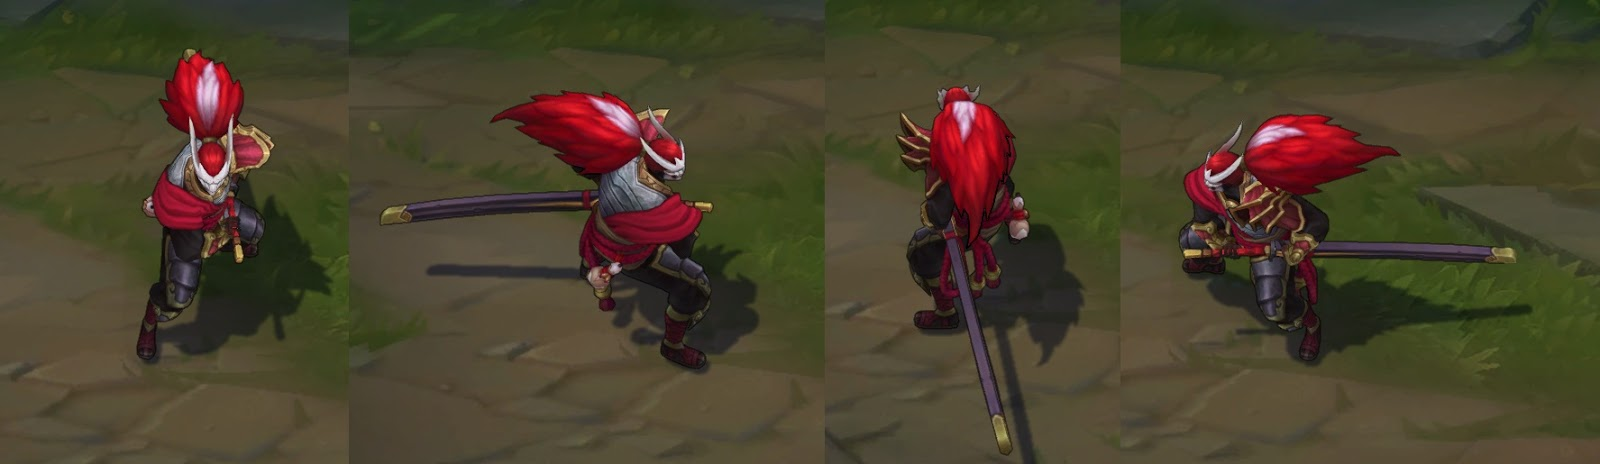 Blood Moon Yasuo skin for League of Legends